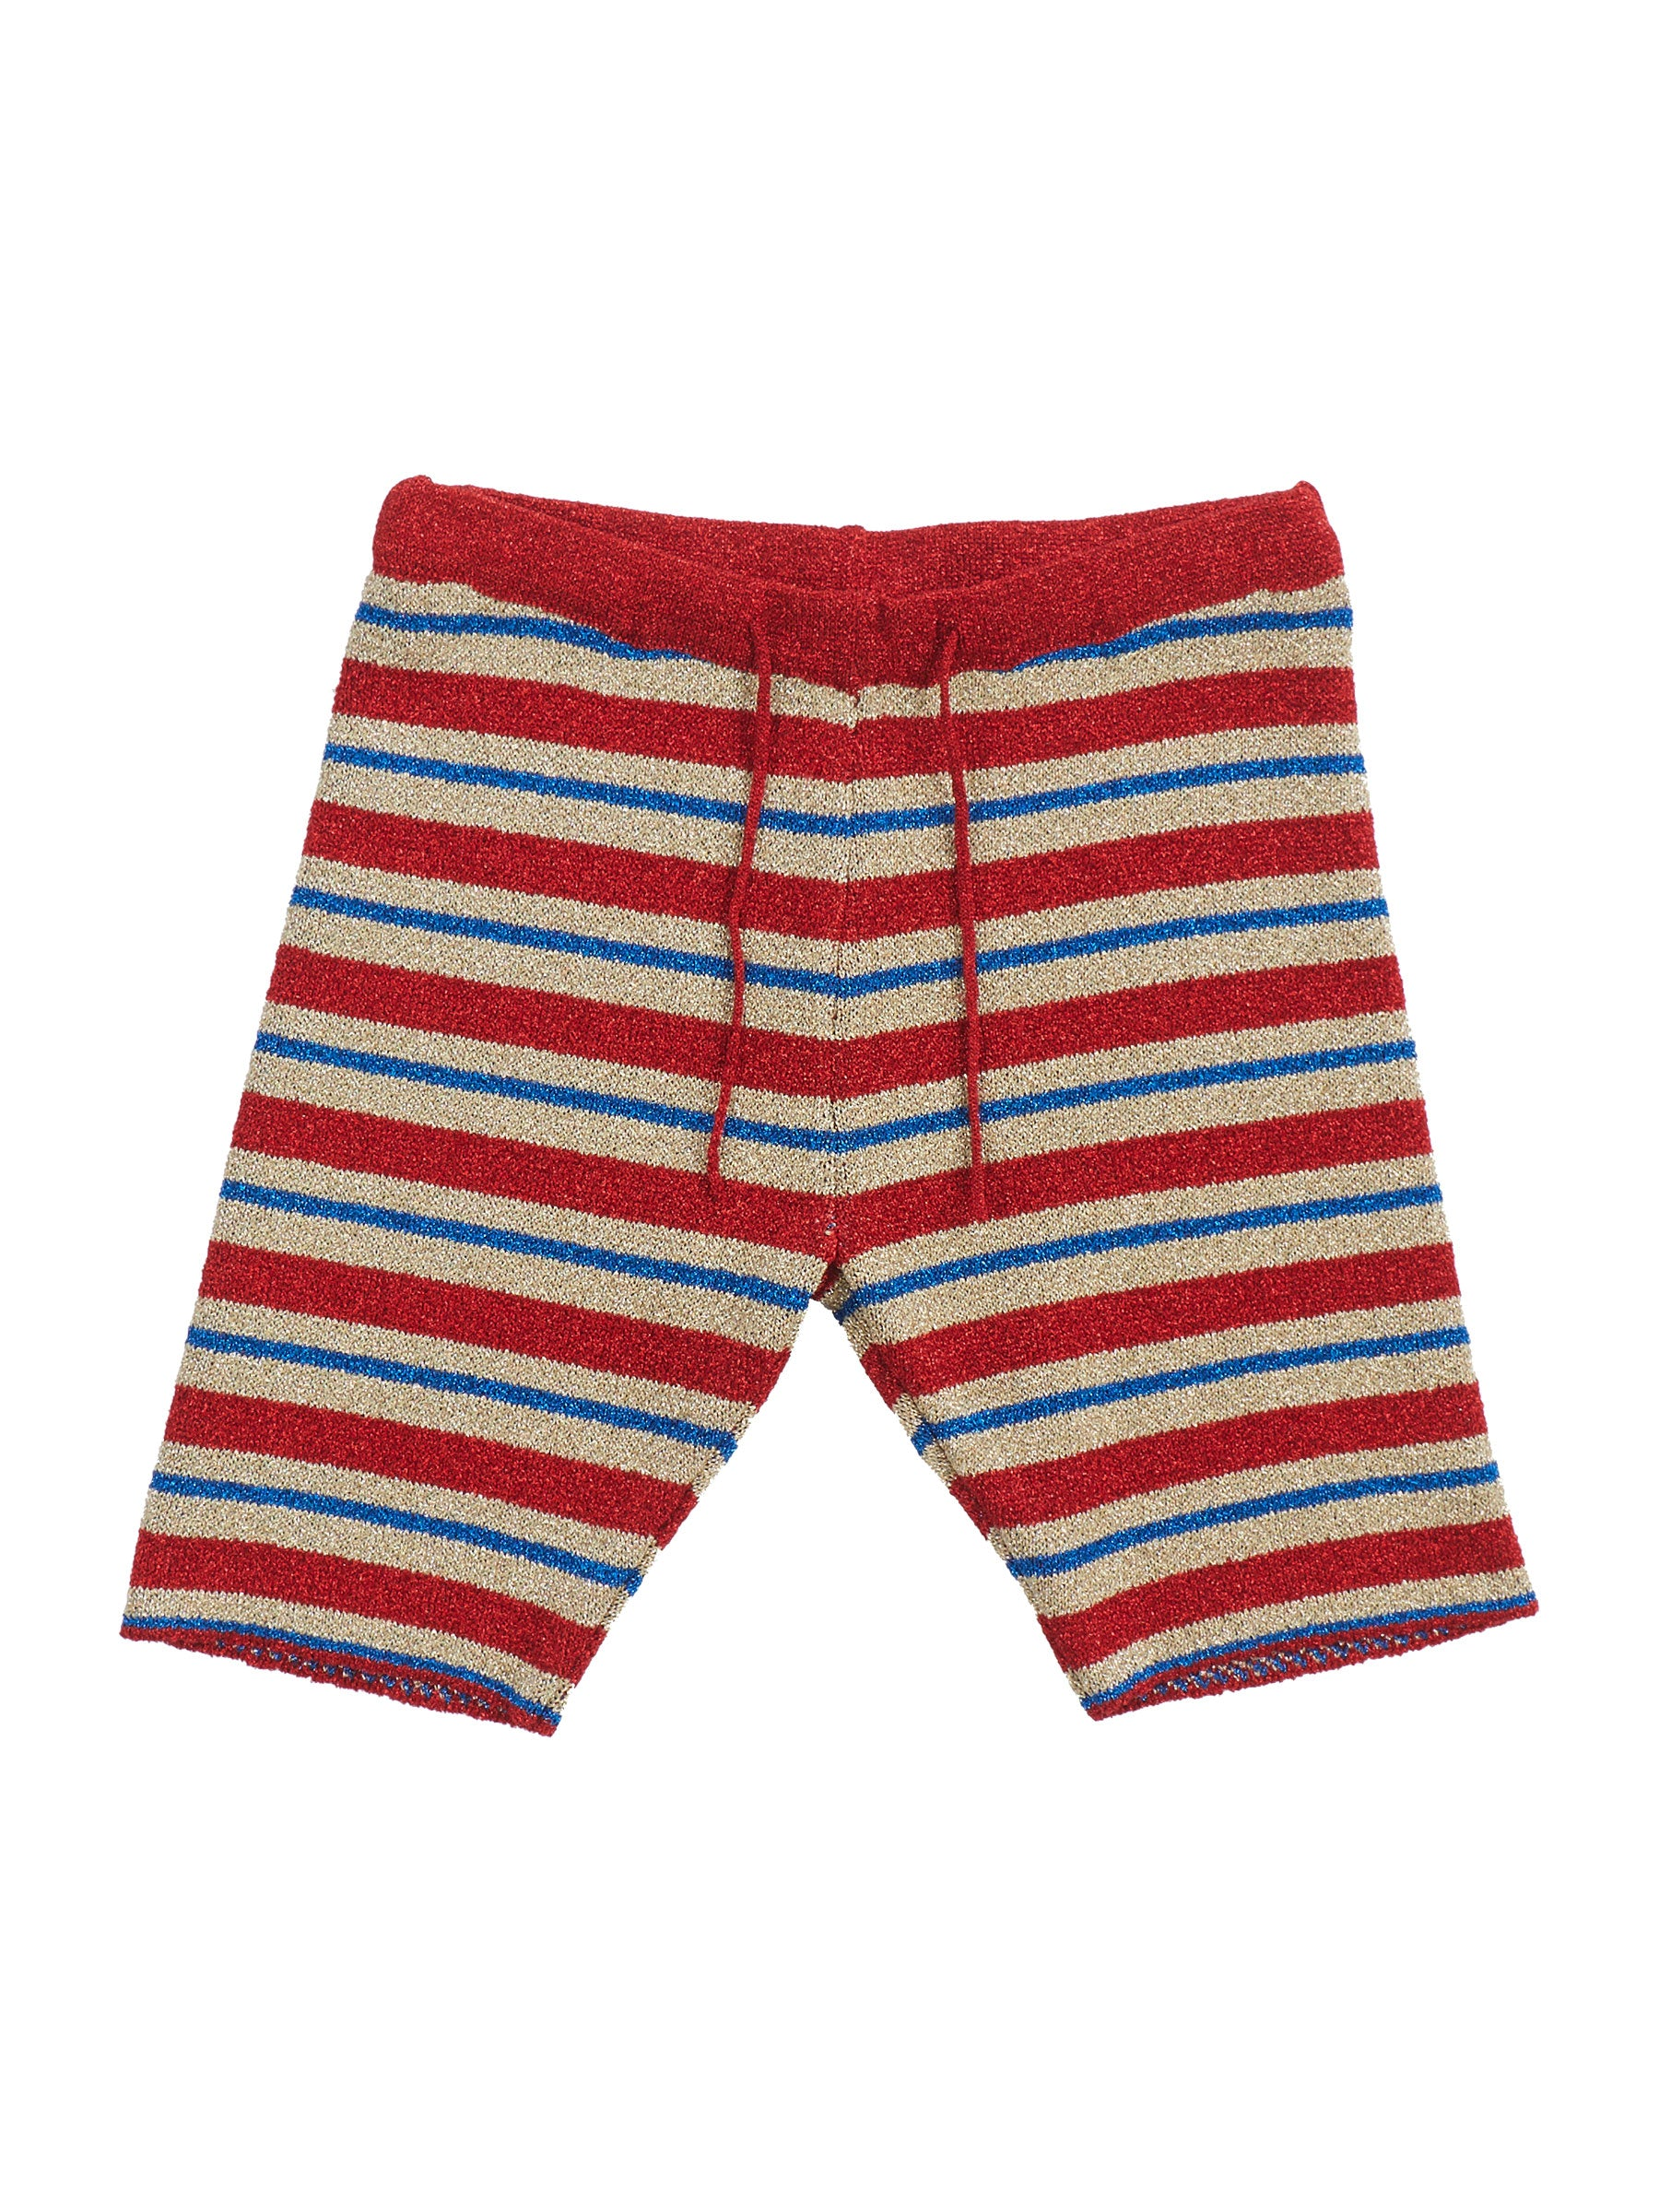 Mike Knit Shorts